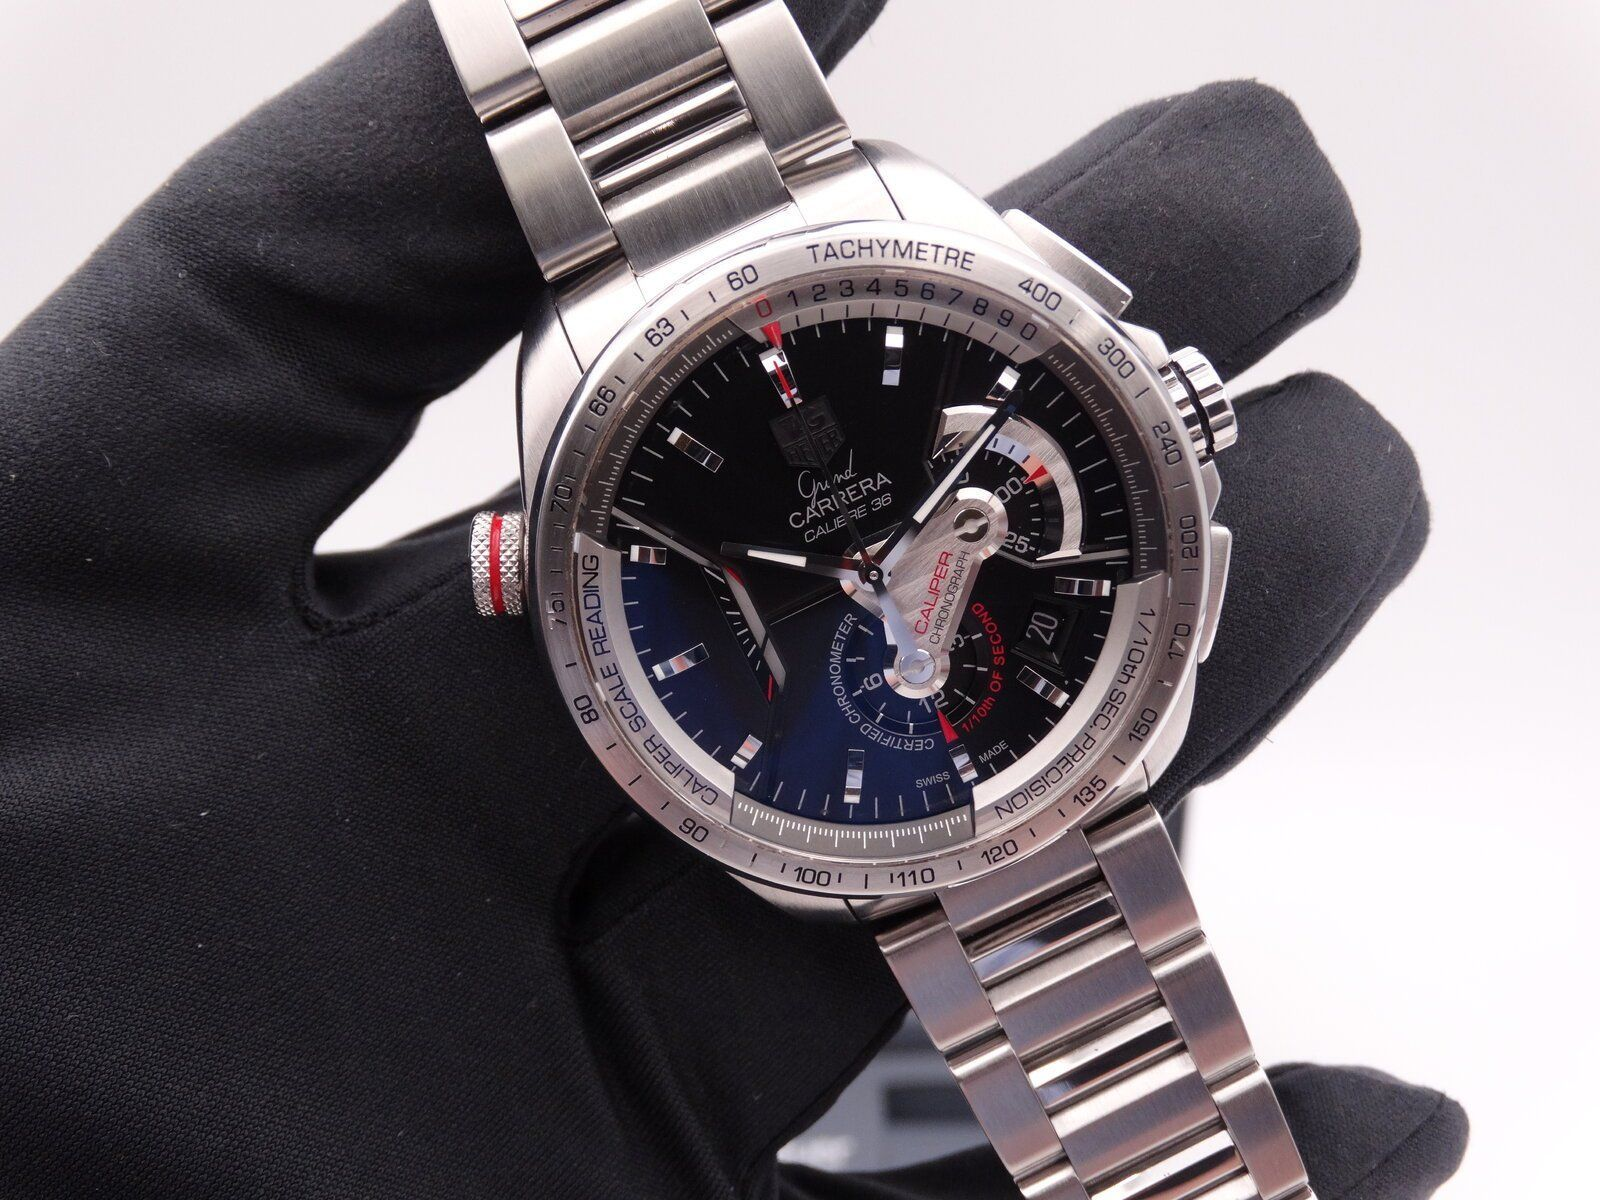 tag heuer grand carrera calibre 36 9414.JPG